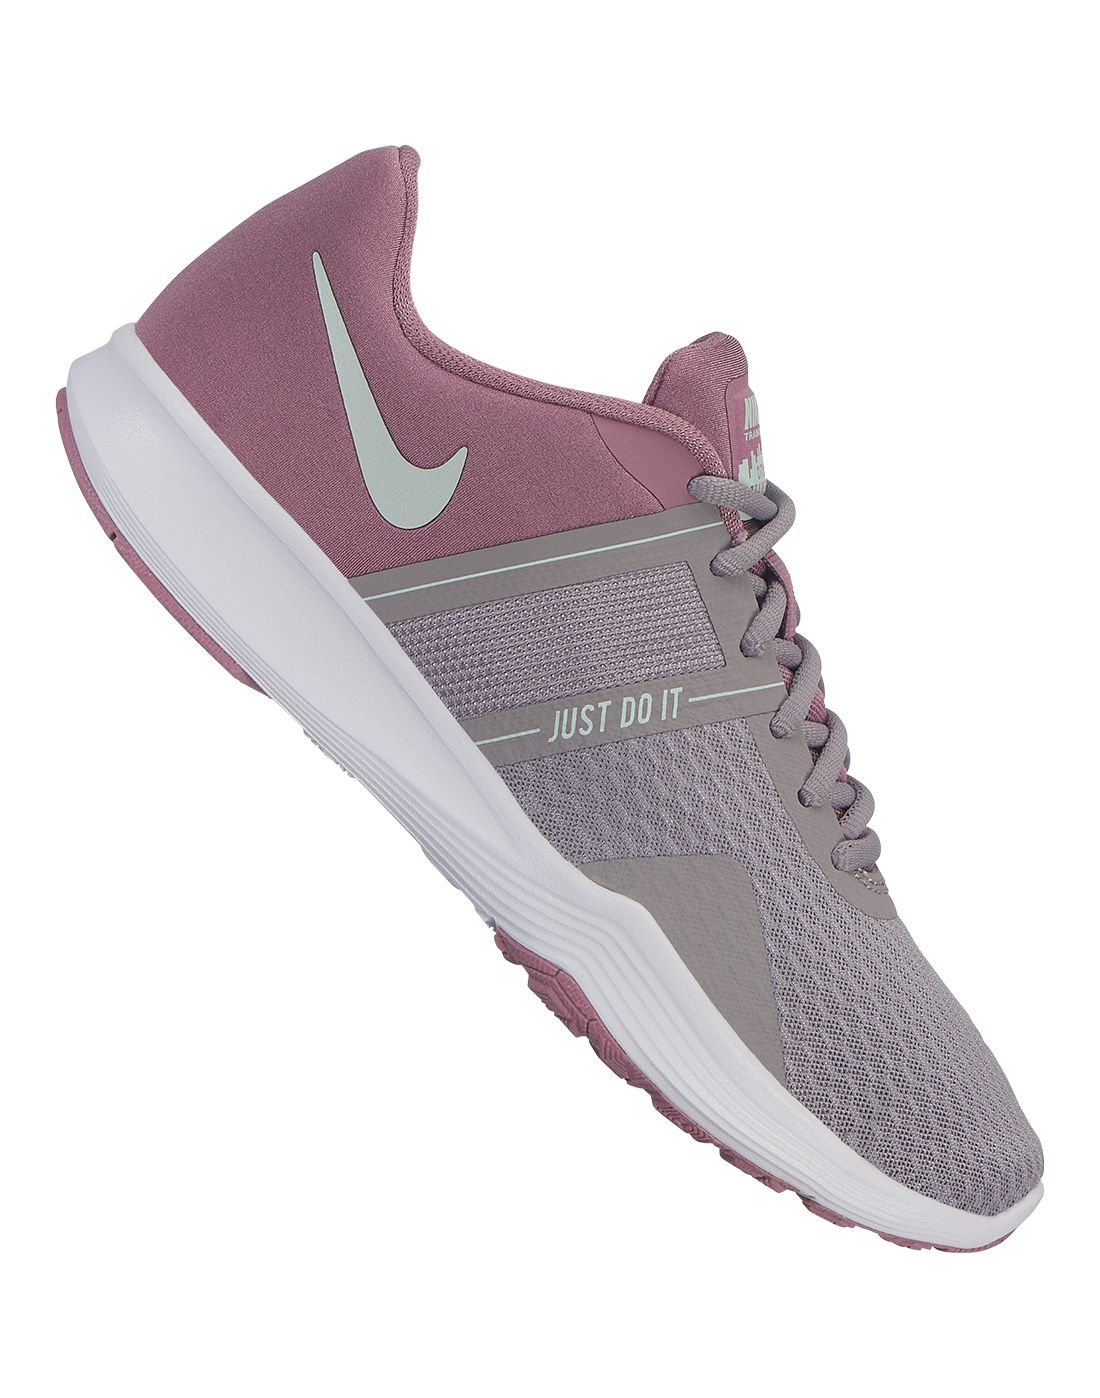 Womens City Trainer   Womens gym shoes